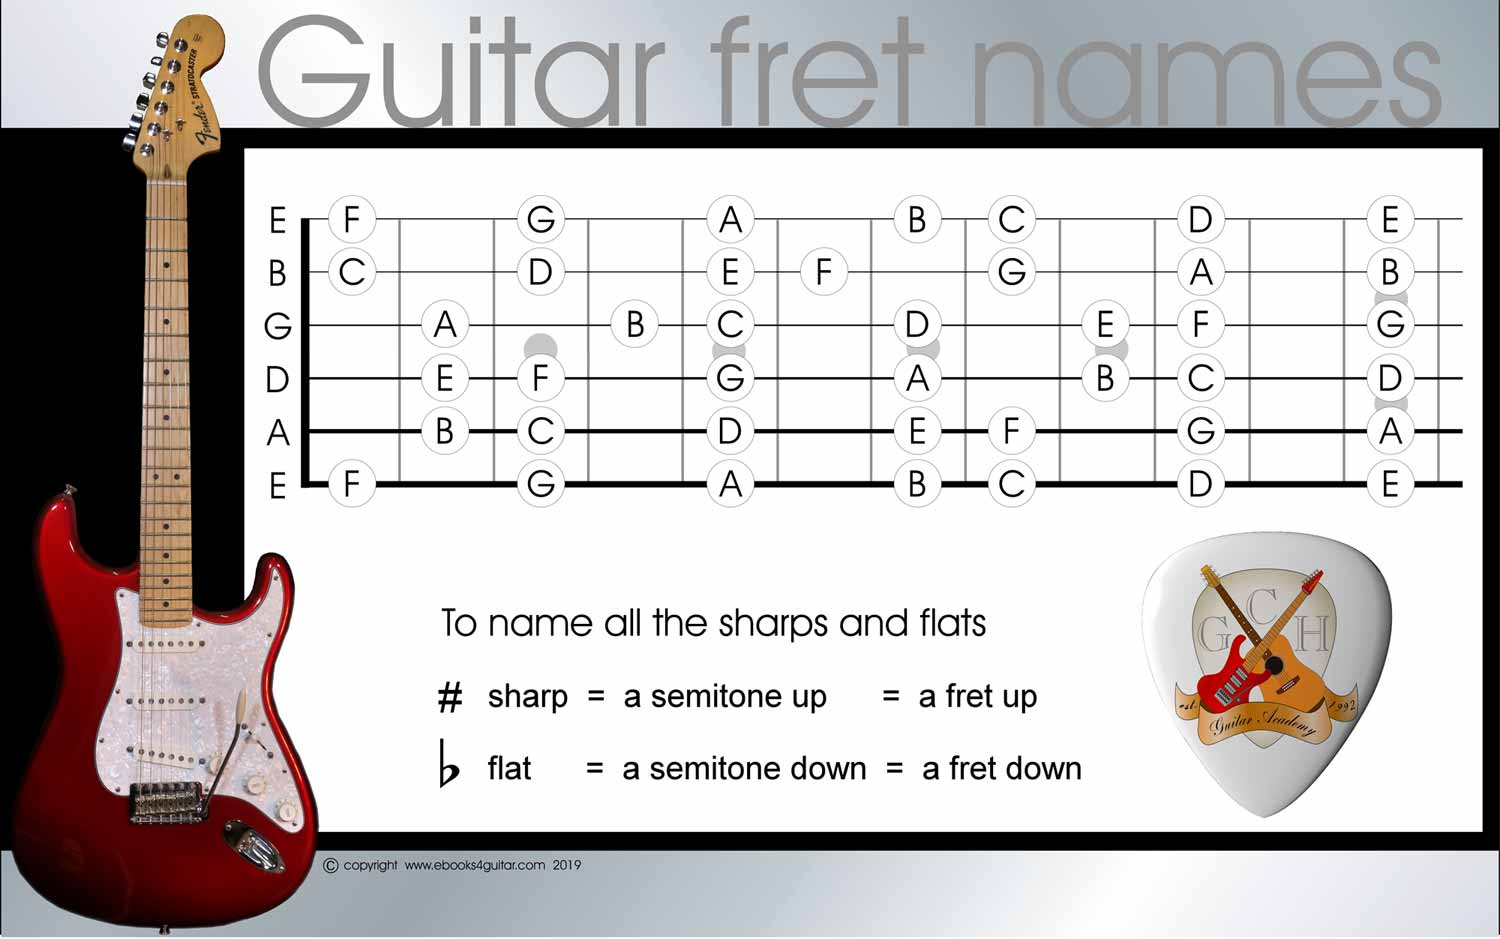 printable image of the guitar fretboard, note names, guitar string names, fret names